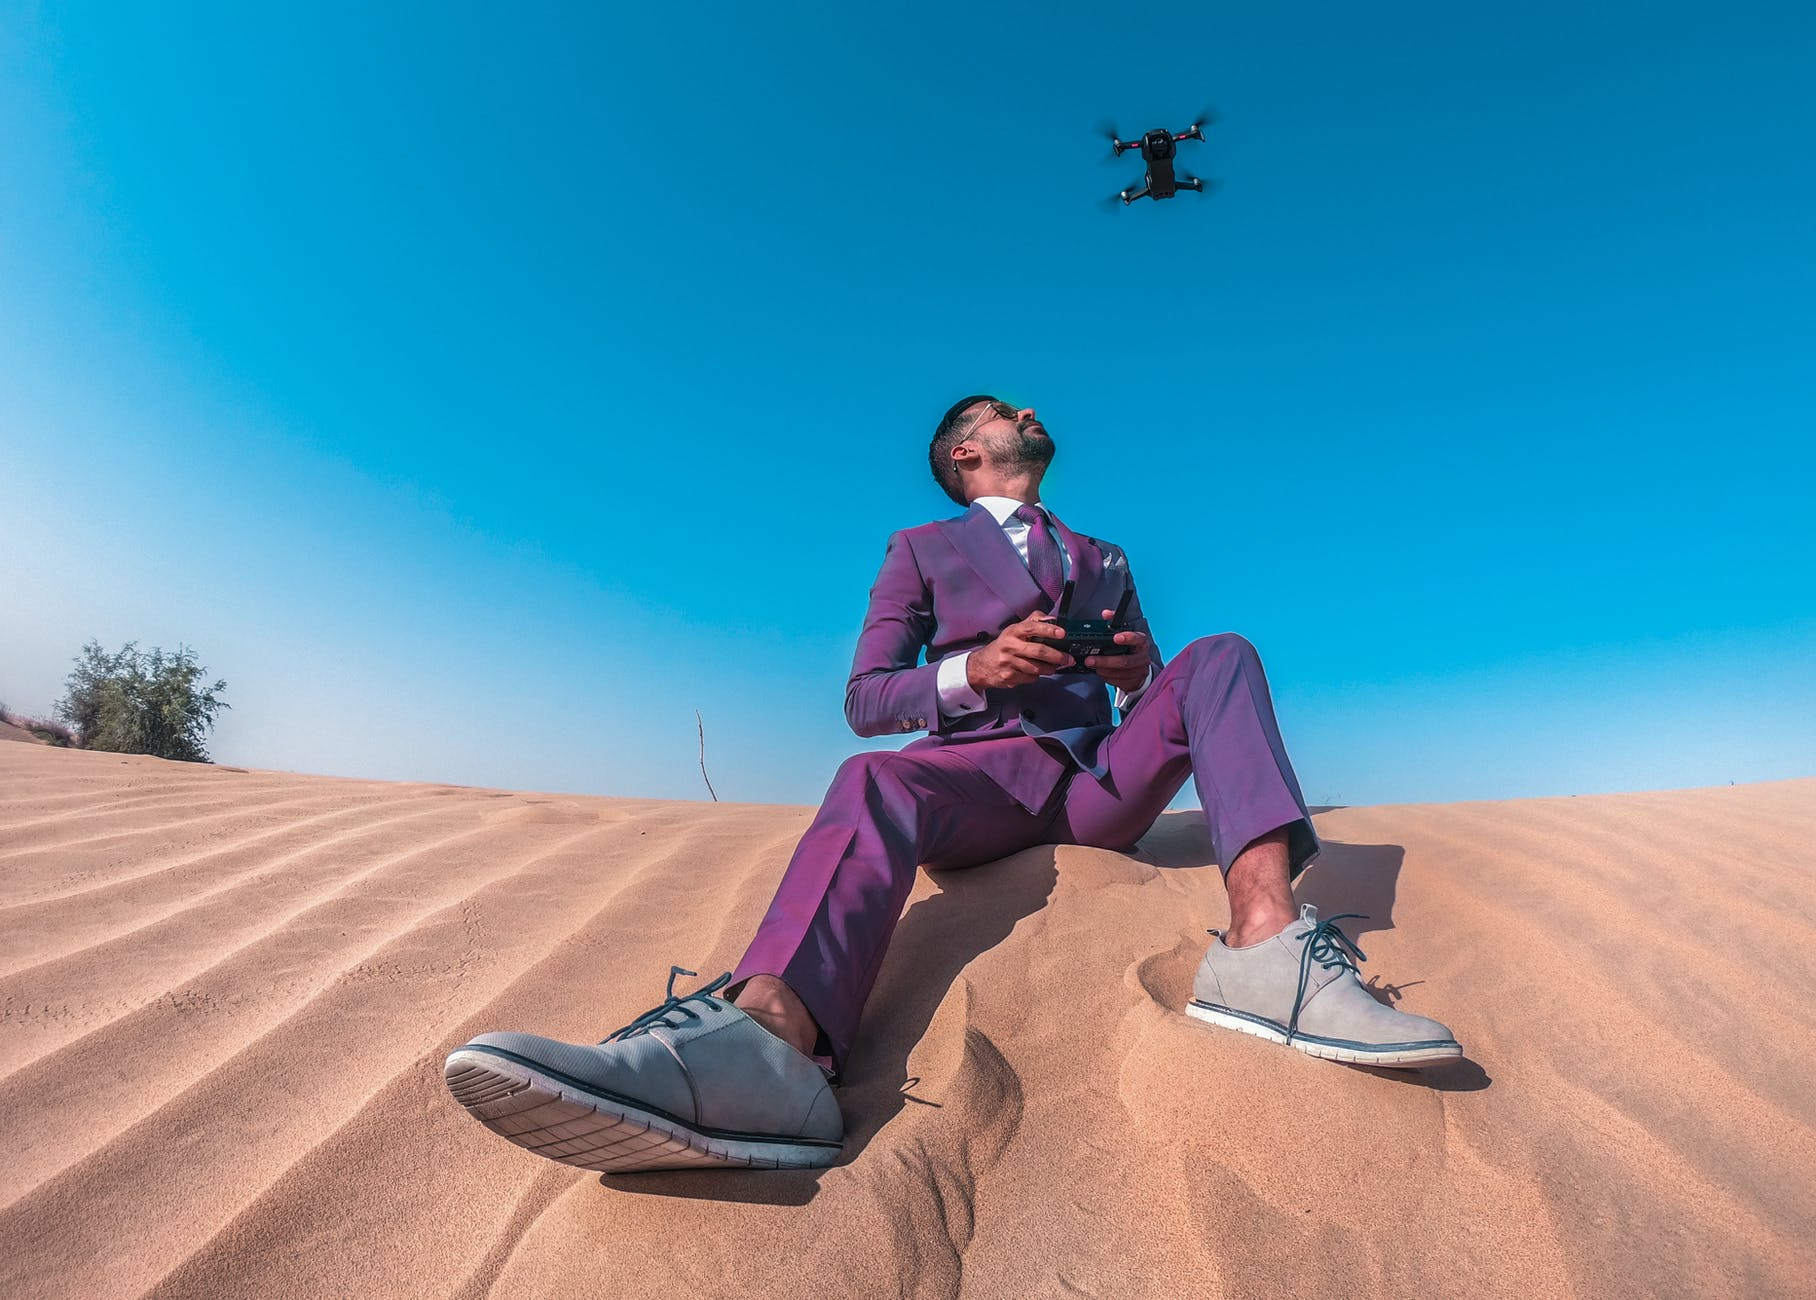 corporate man sitting on the sand while flying his drone